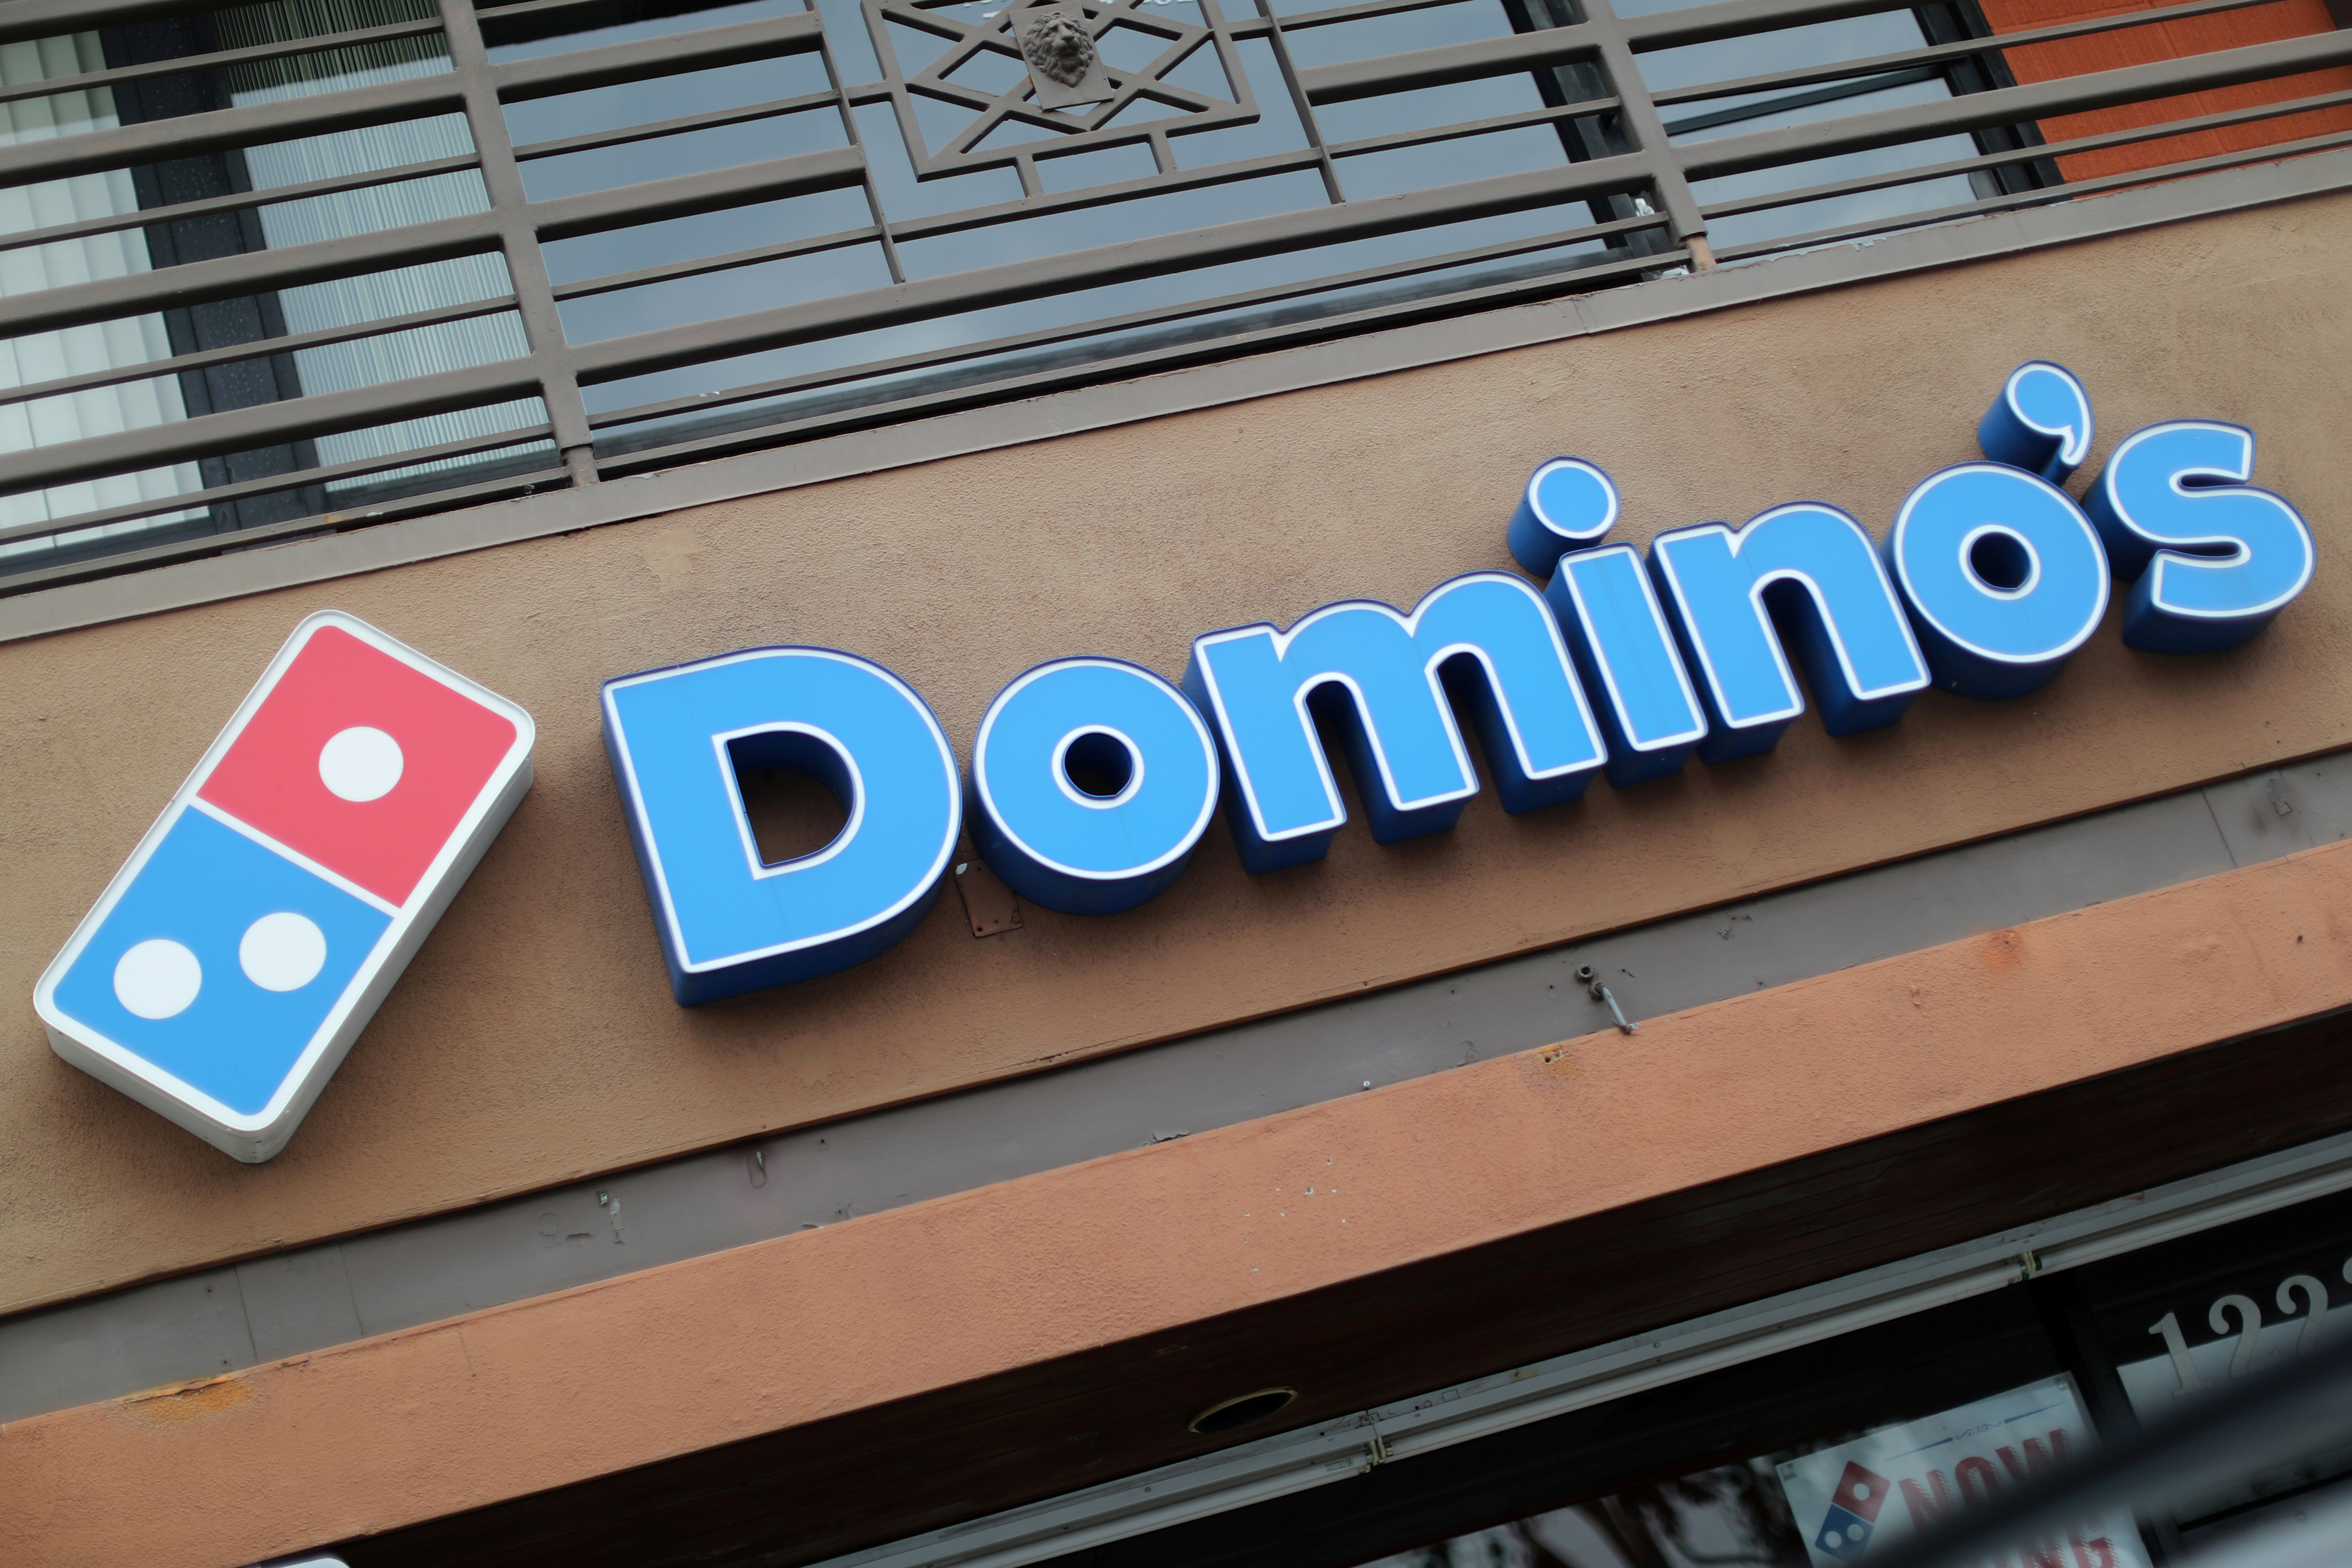 A Domino's Pizza restaurant is seen in Los Angeles, California, U.S. July 18, 2018. REUTERS/Lucy Nicholson